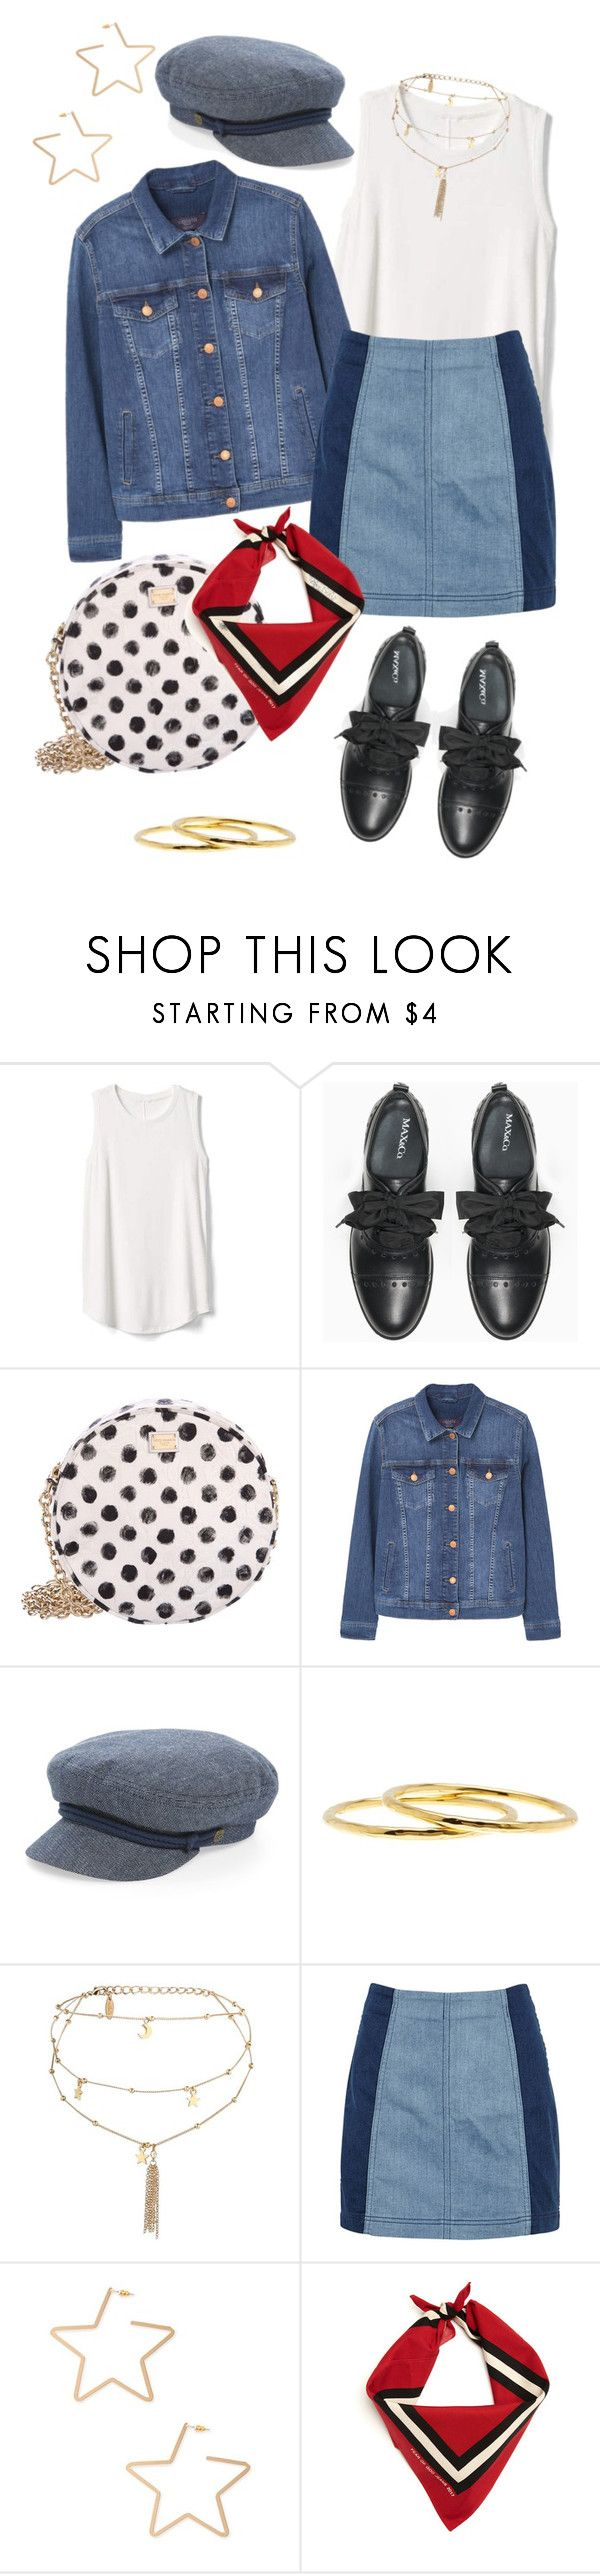 """""""Polka Dots Americana"""" by laurapa ❤ liked on Polyvore featuring Gap, Max&Co., Dolce&Gabbana, MANGO, Brixton, Argento Vivo, Ettika, Free People and Forever 21"""